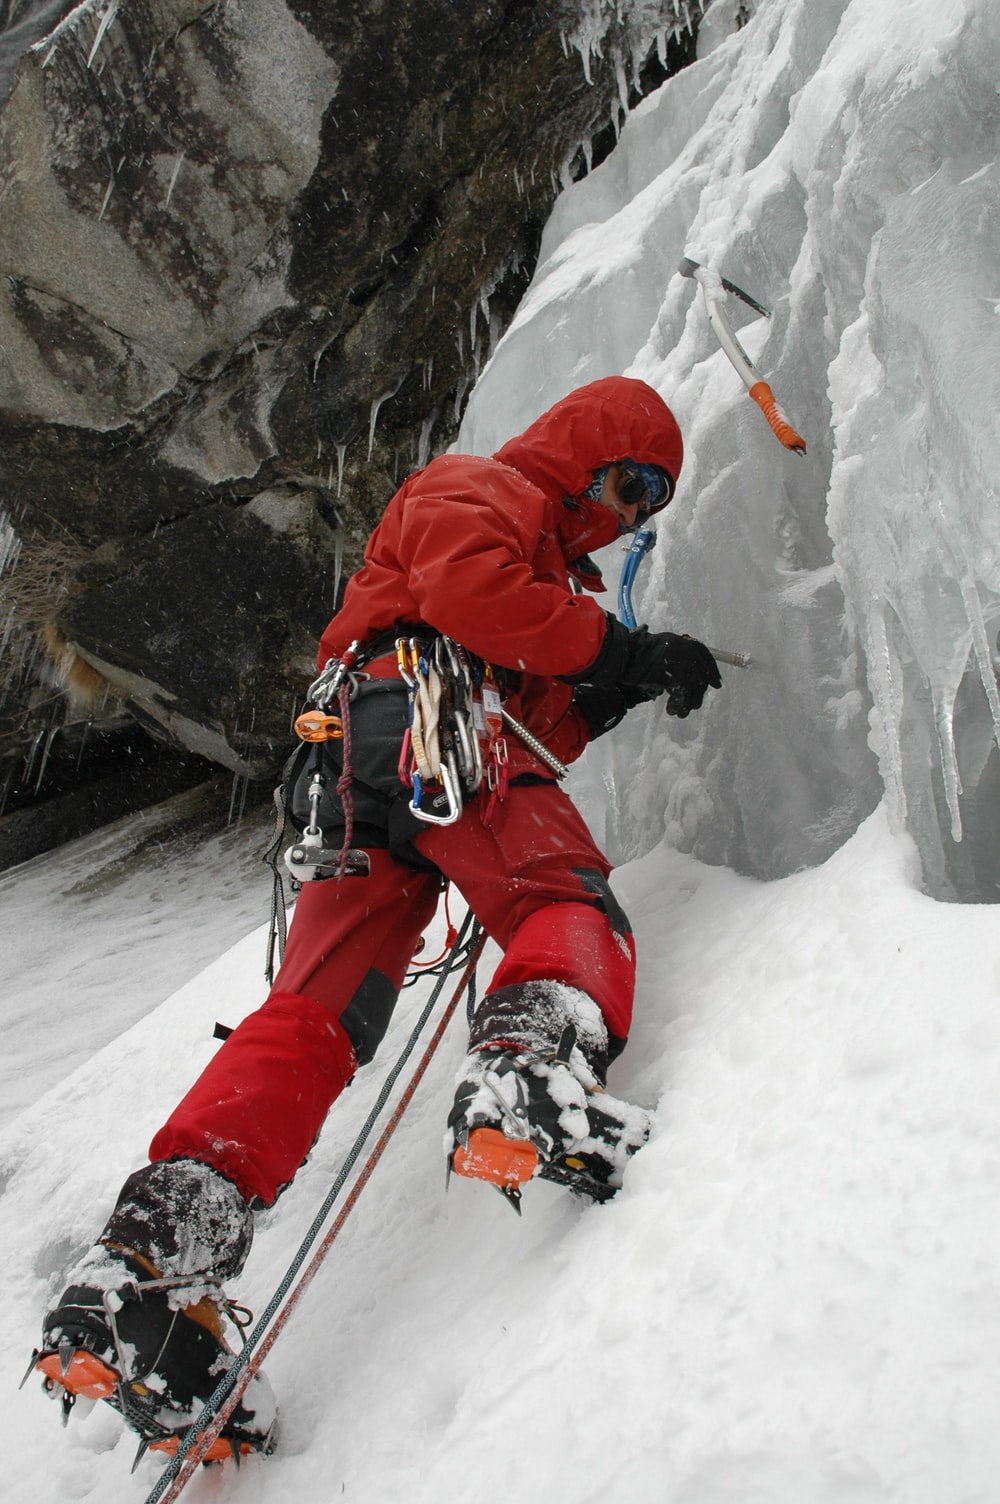 man wearing red jacket and pants